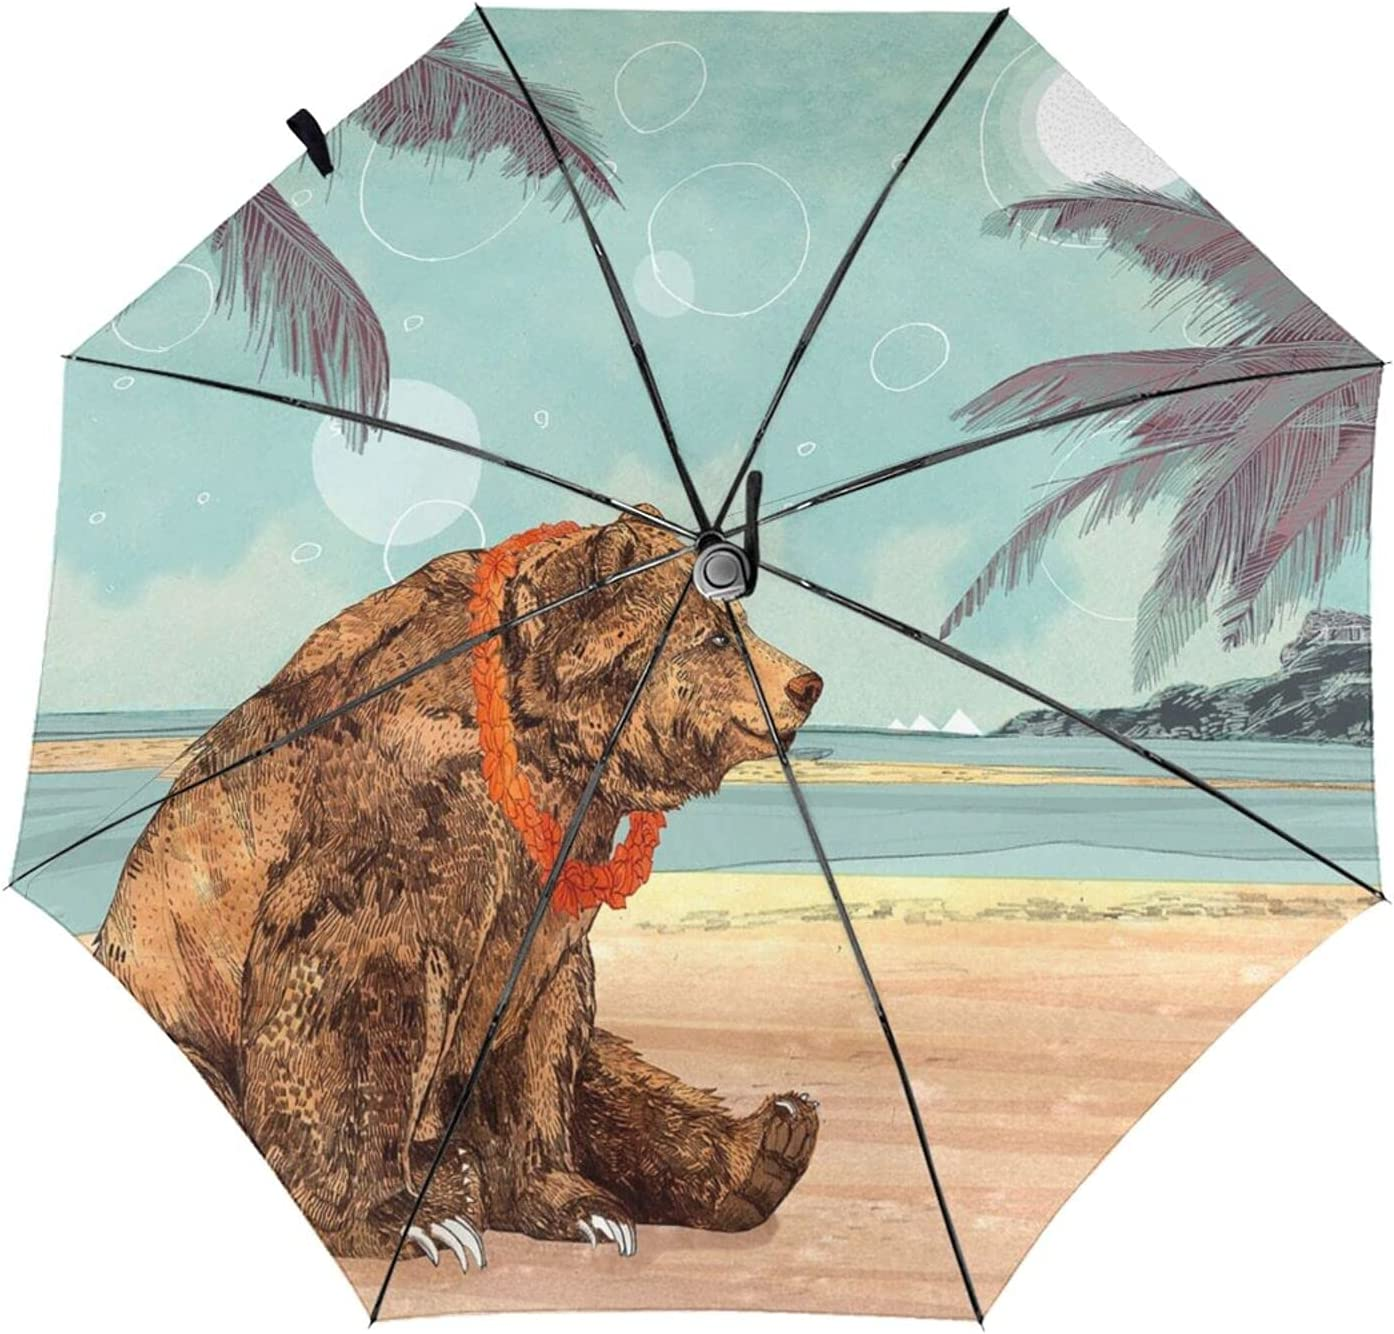 NEWKOW Outdoor Umbrellas Automatic Open It is very popular 70% OFF Outlet for Ca Walking Windproof